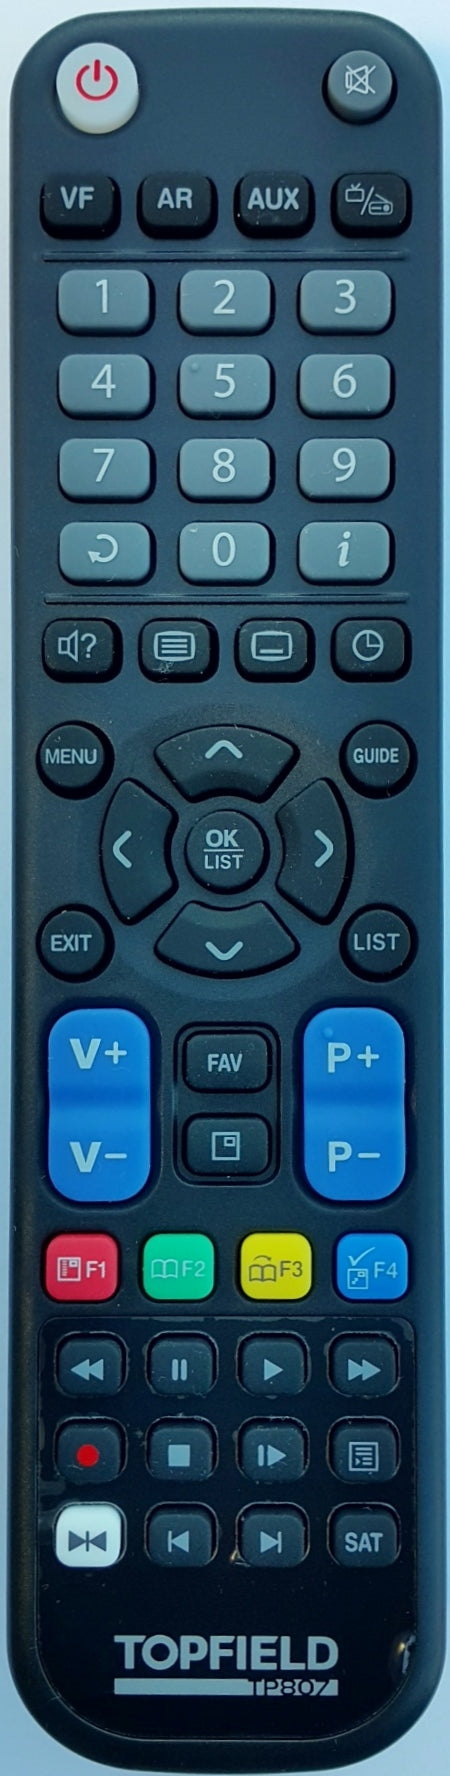 ORIGINAL TOPFIELD REMOTE CONTROL  TP807 -  TF7100HDPVRT PLUS  TRF7160  TRF7170  TRF-7260 PLUS  TPR5000  DVR PVR  RECORDER - Remote Control Warehouse